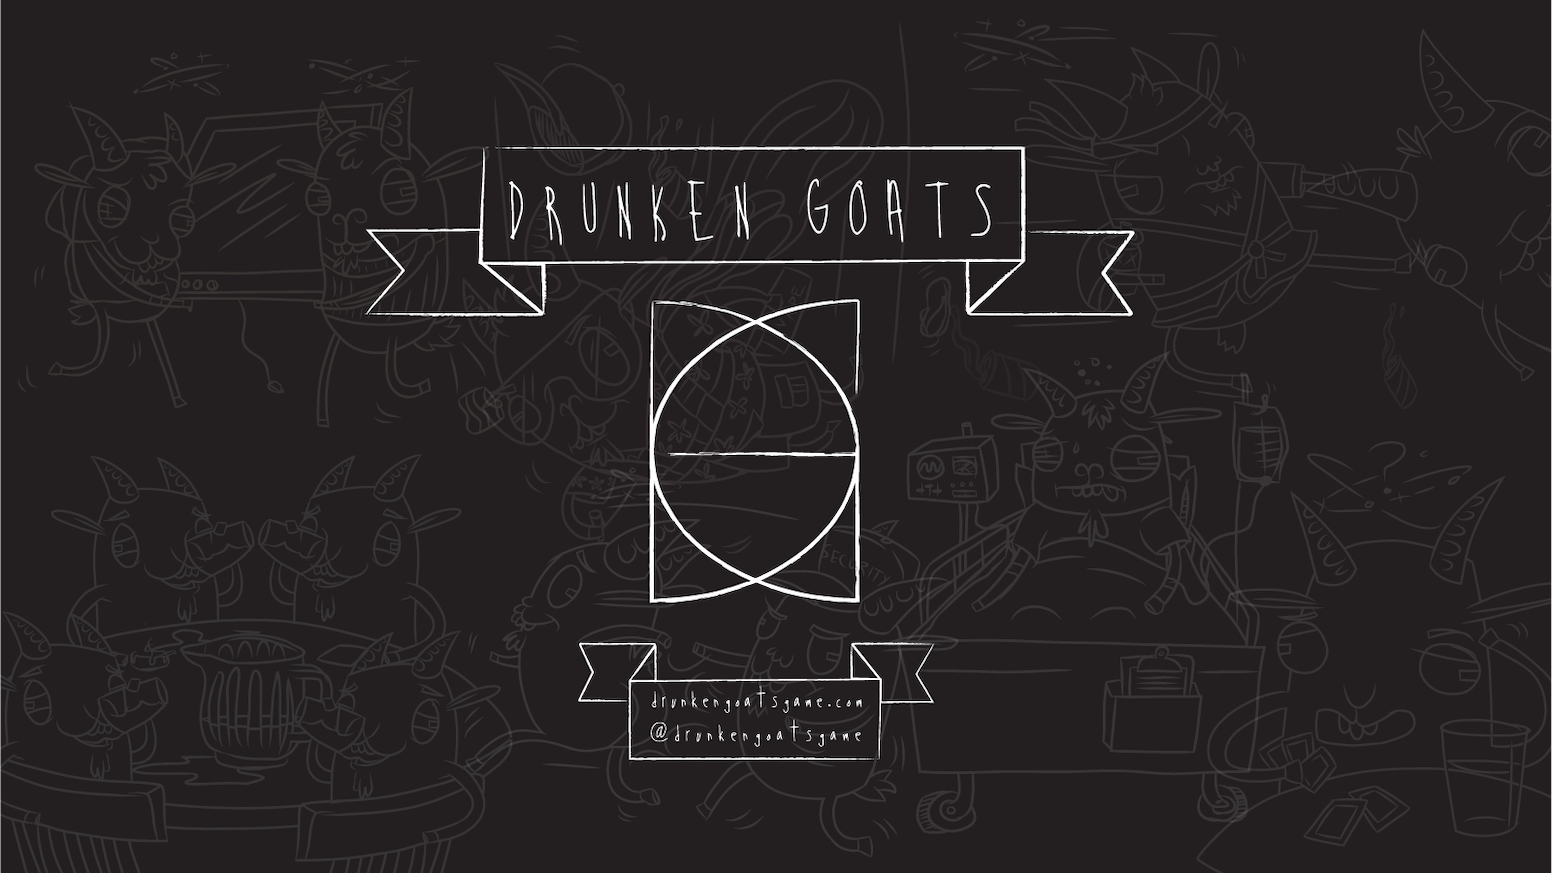 Drunken Goats card game is a quirky, fast-paced, easy-to-learn card game with optional drinking rules.